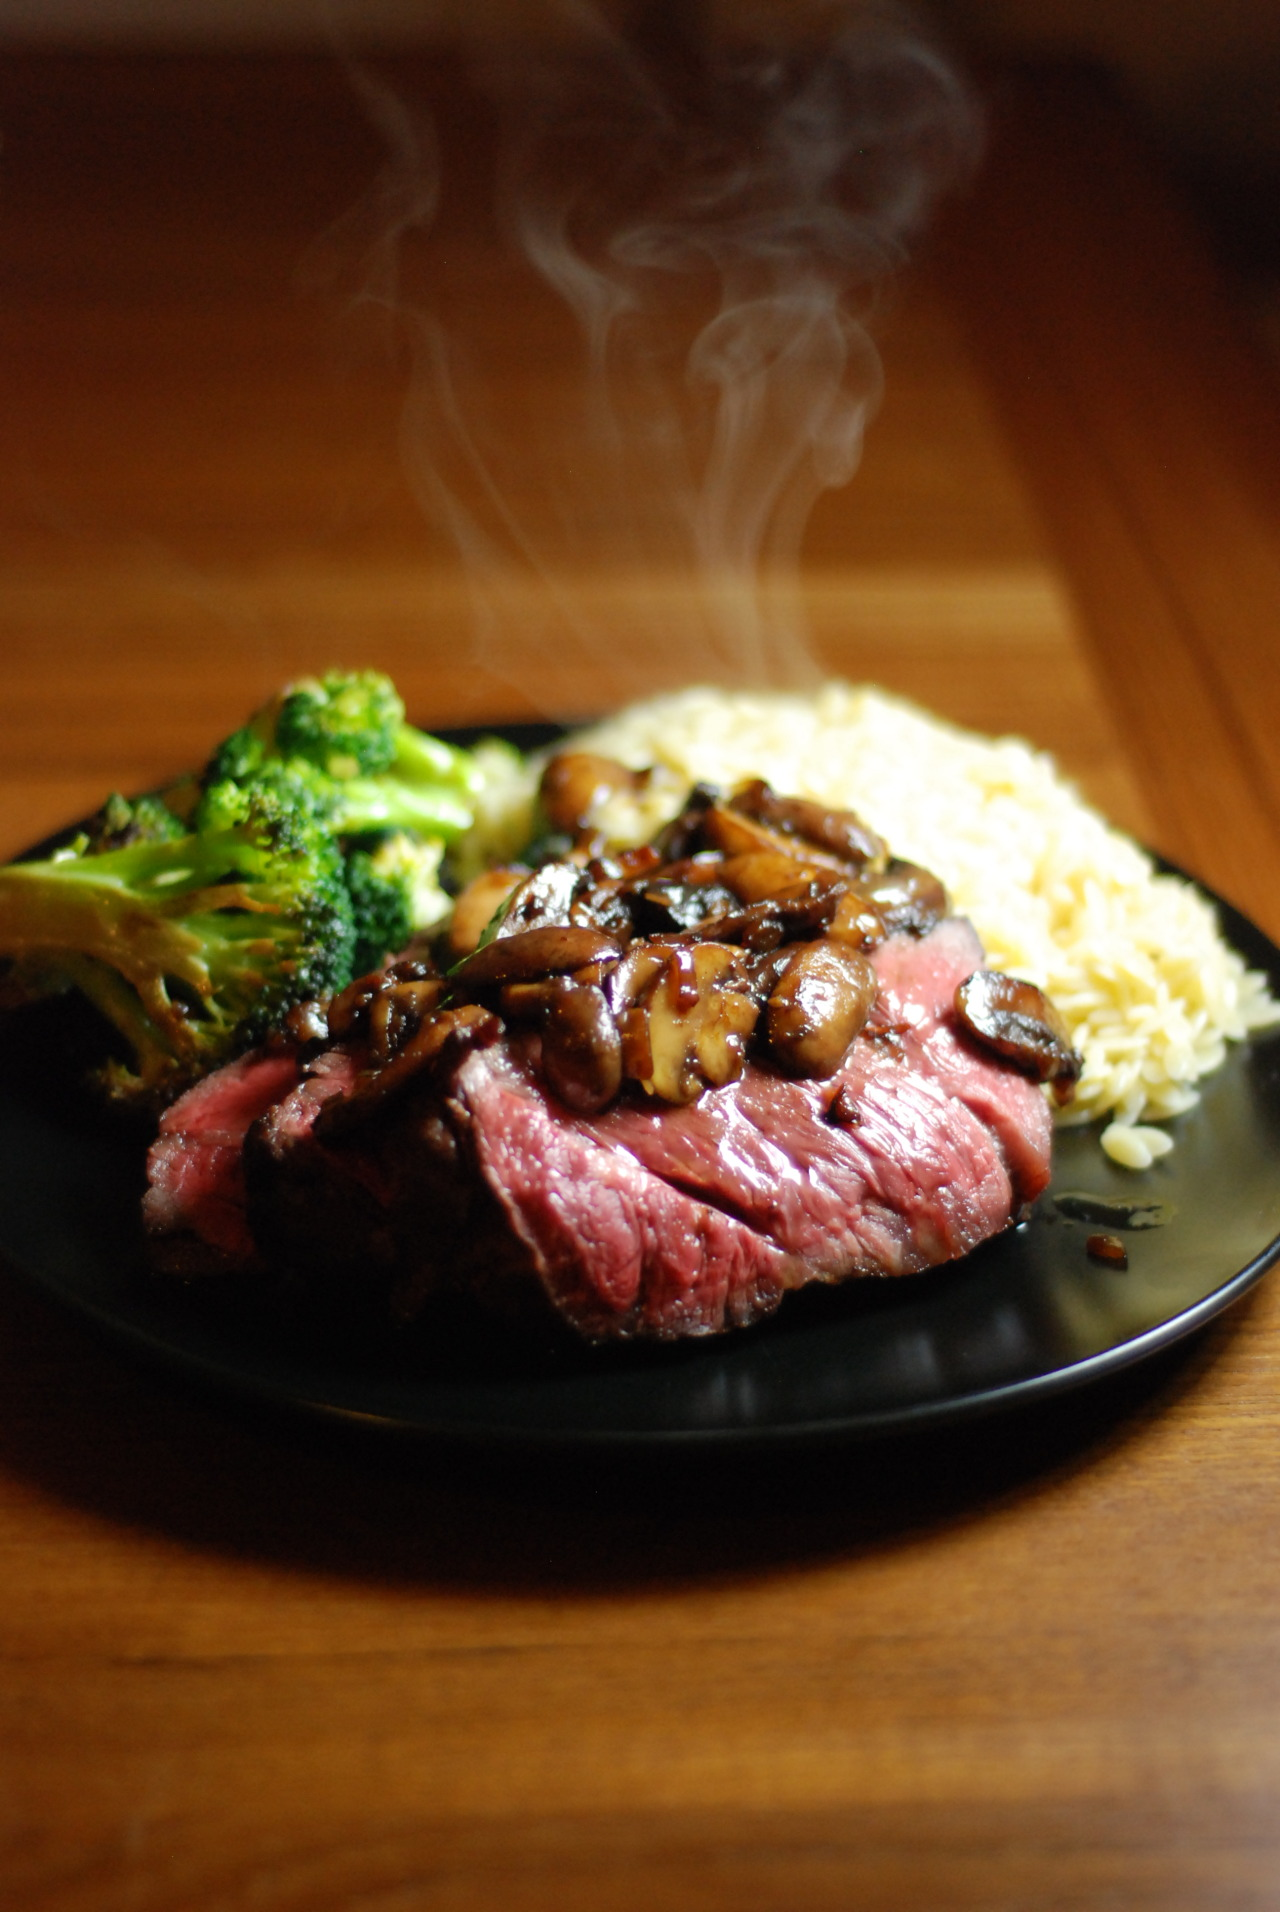 haldean eats      Sous vide hangar steak at 52 C with balsamic    Sous vide hangar steak at 52 C with balsamic mushrooms  sauteed broccoli  I  really